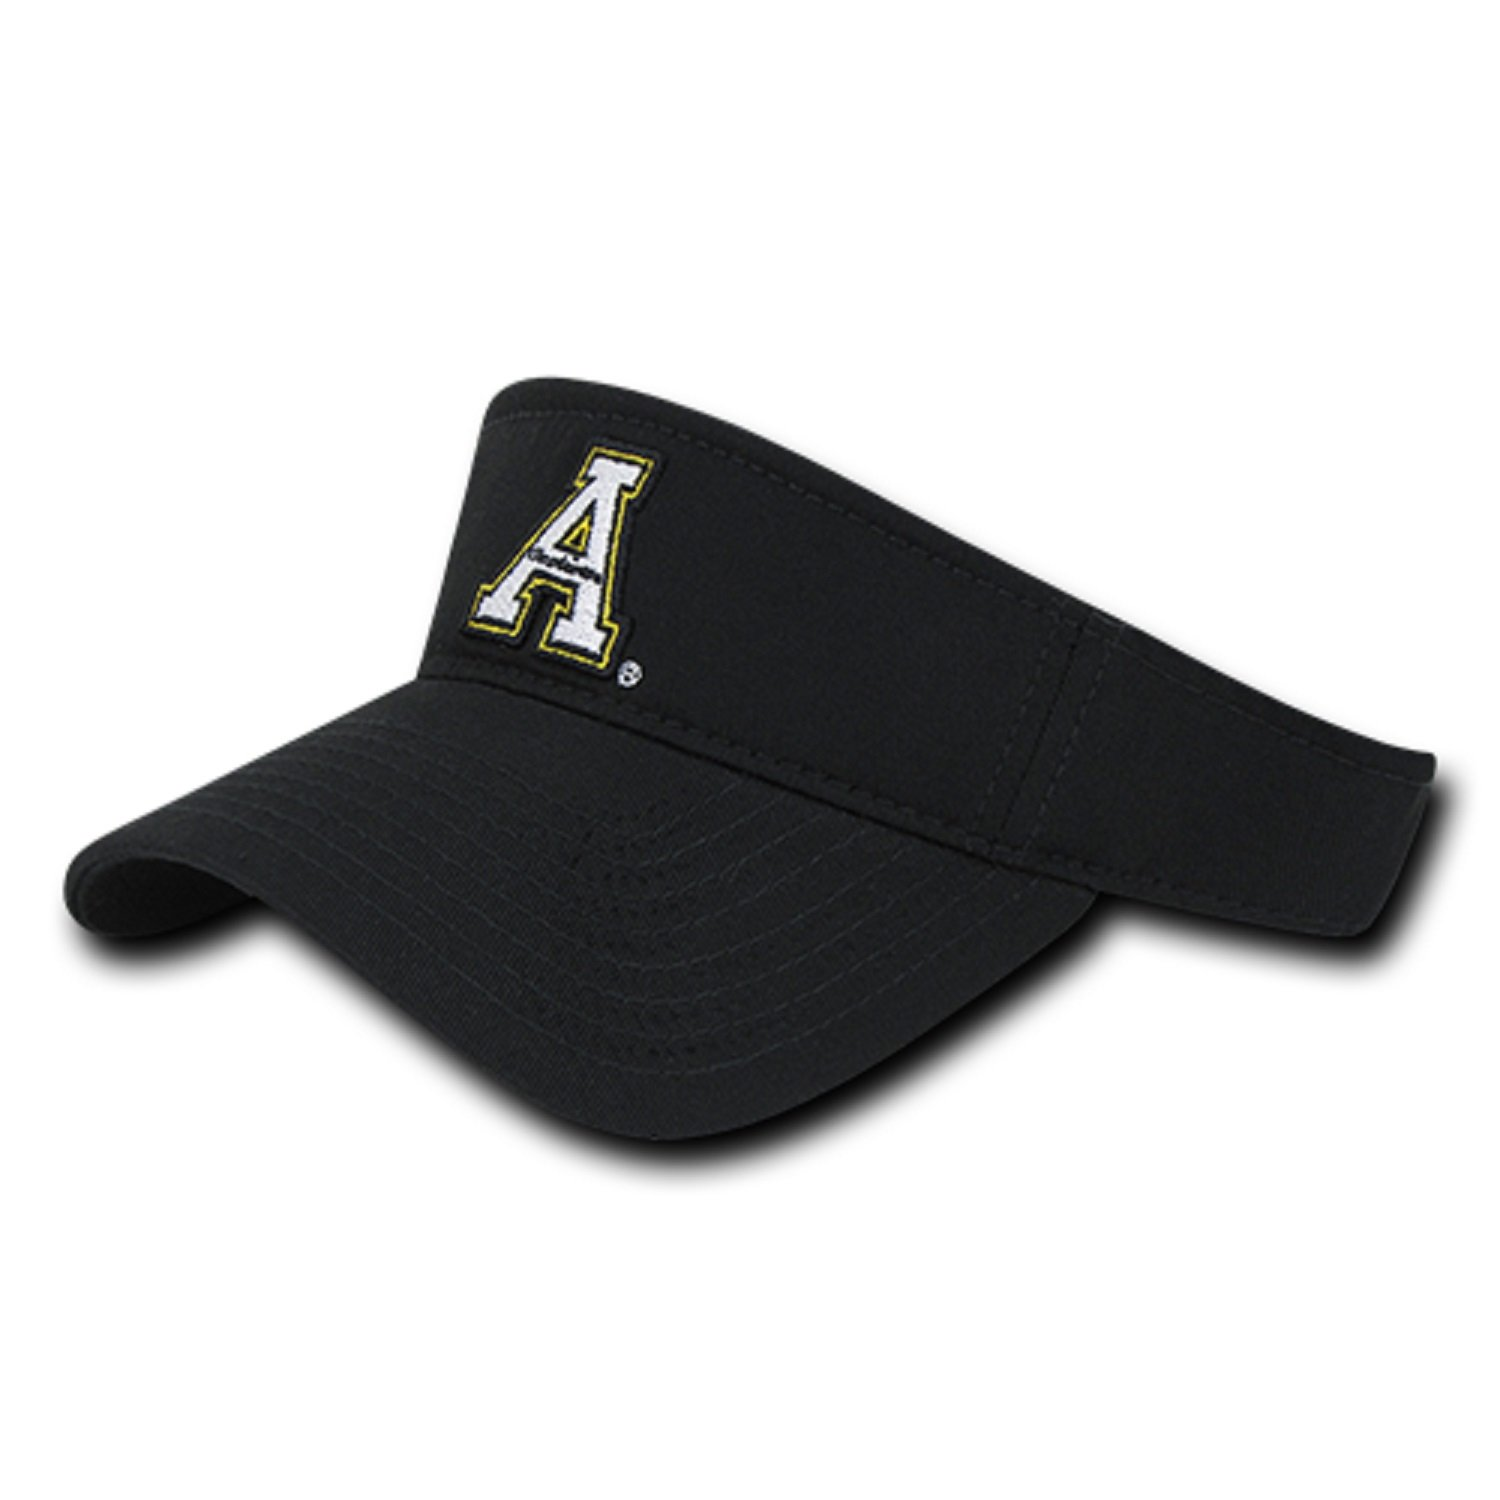 c44e4fceb12d3 BHFC ASU Appalachian App State University Mountaineers Cotton Polo Sun Golf  Tennis Visor Cap Hat at Amazon Men s Clothing store